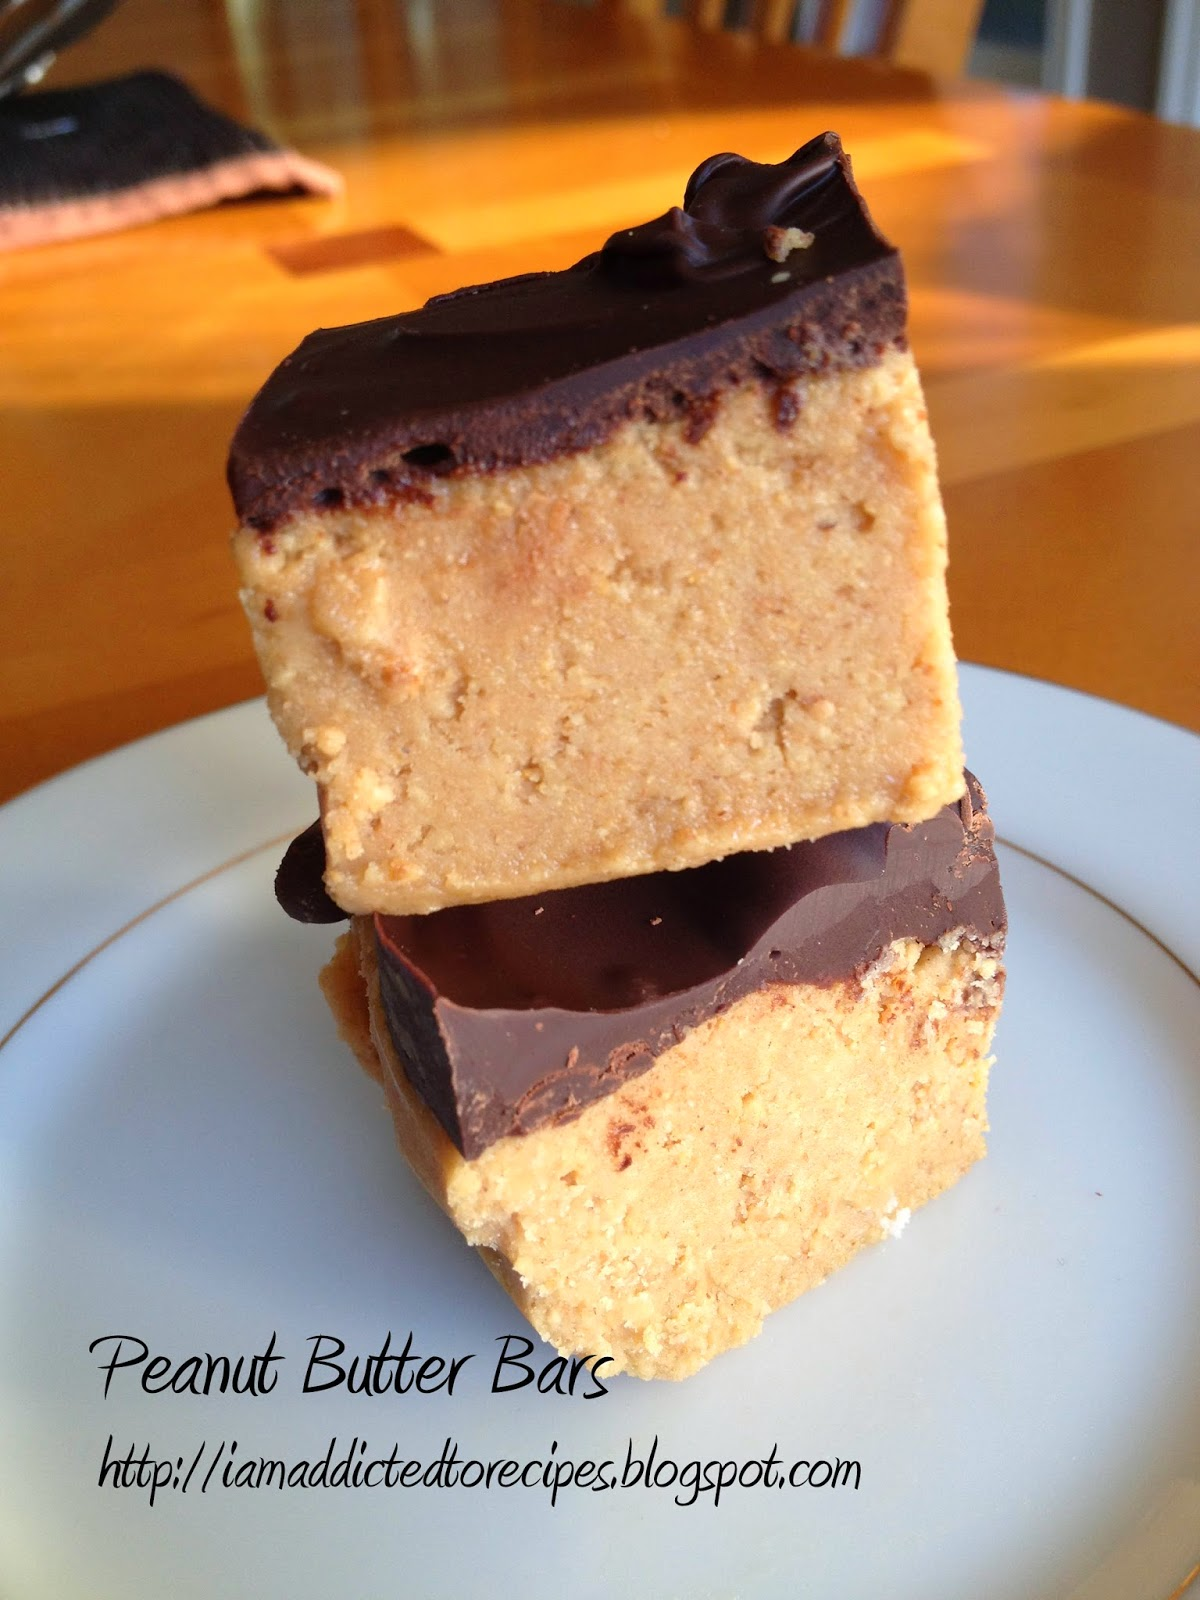 Peanut Butter Bars | Addicted to Recipes